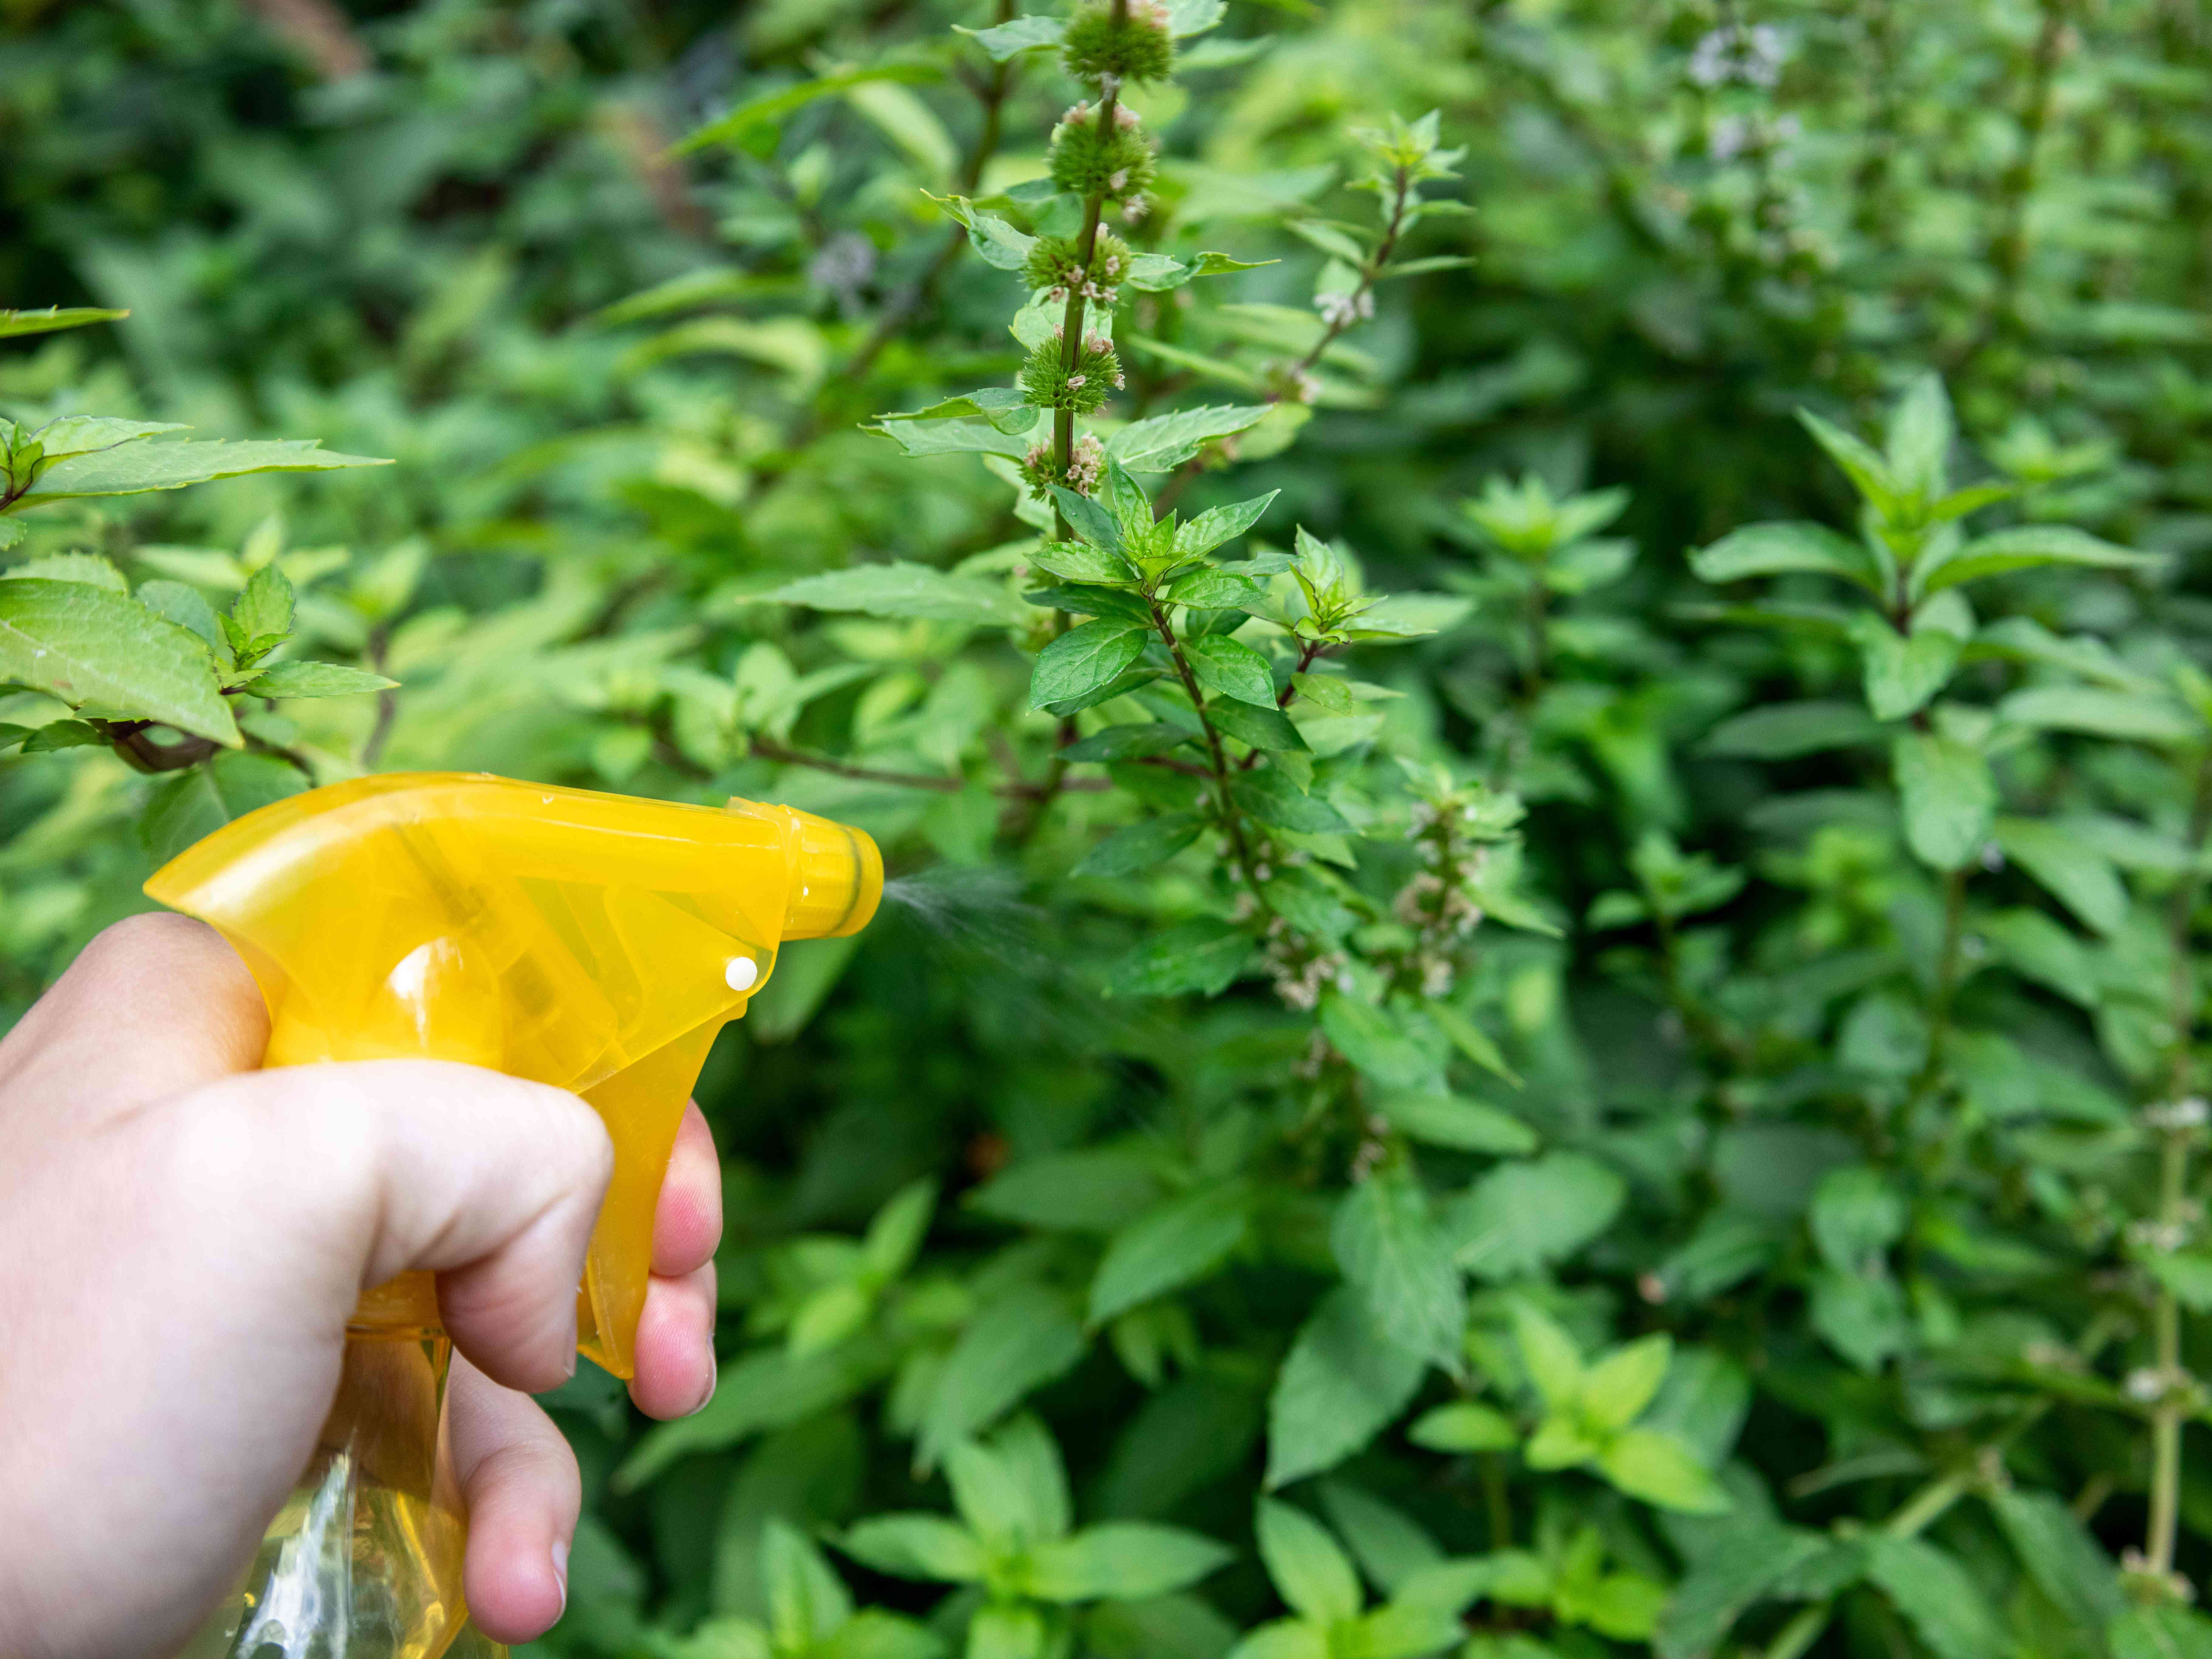 hand uses yellow water spray bottle to keep outside mint moist